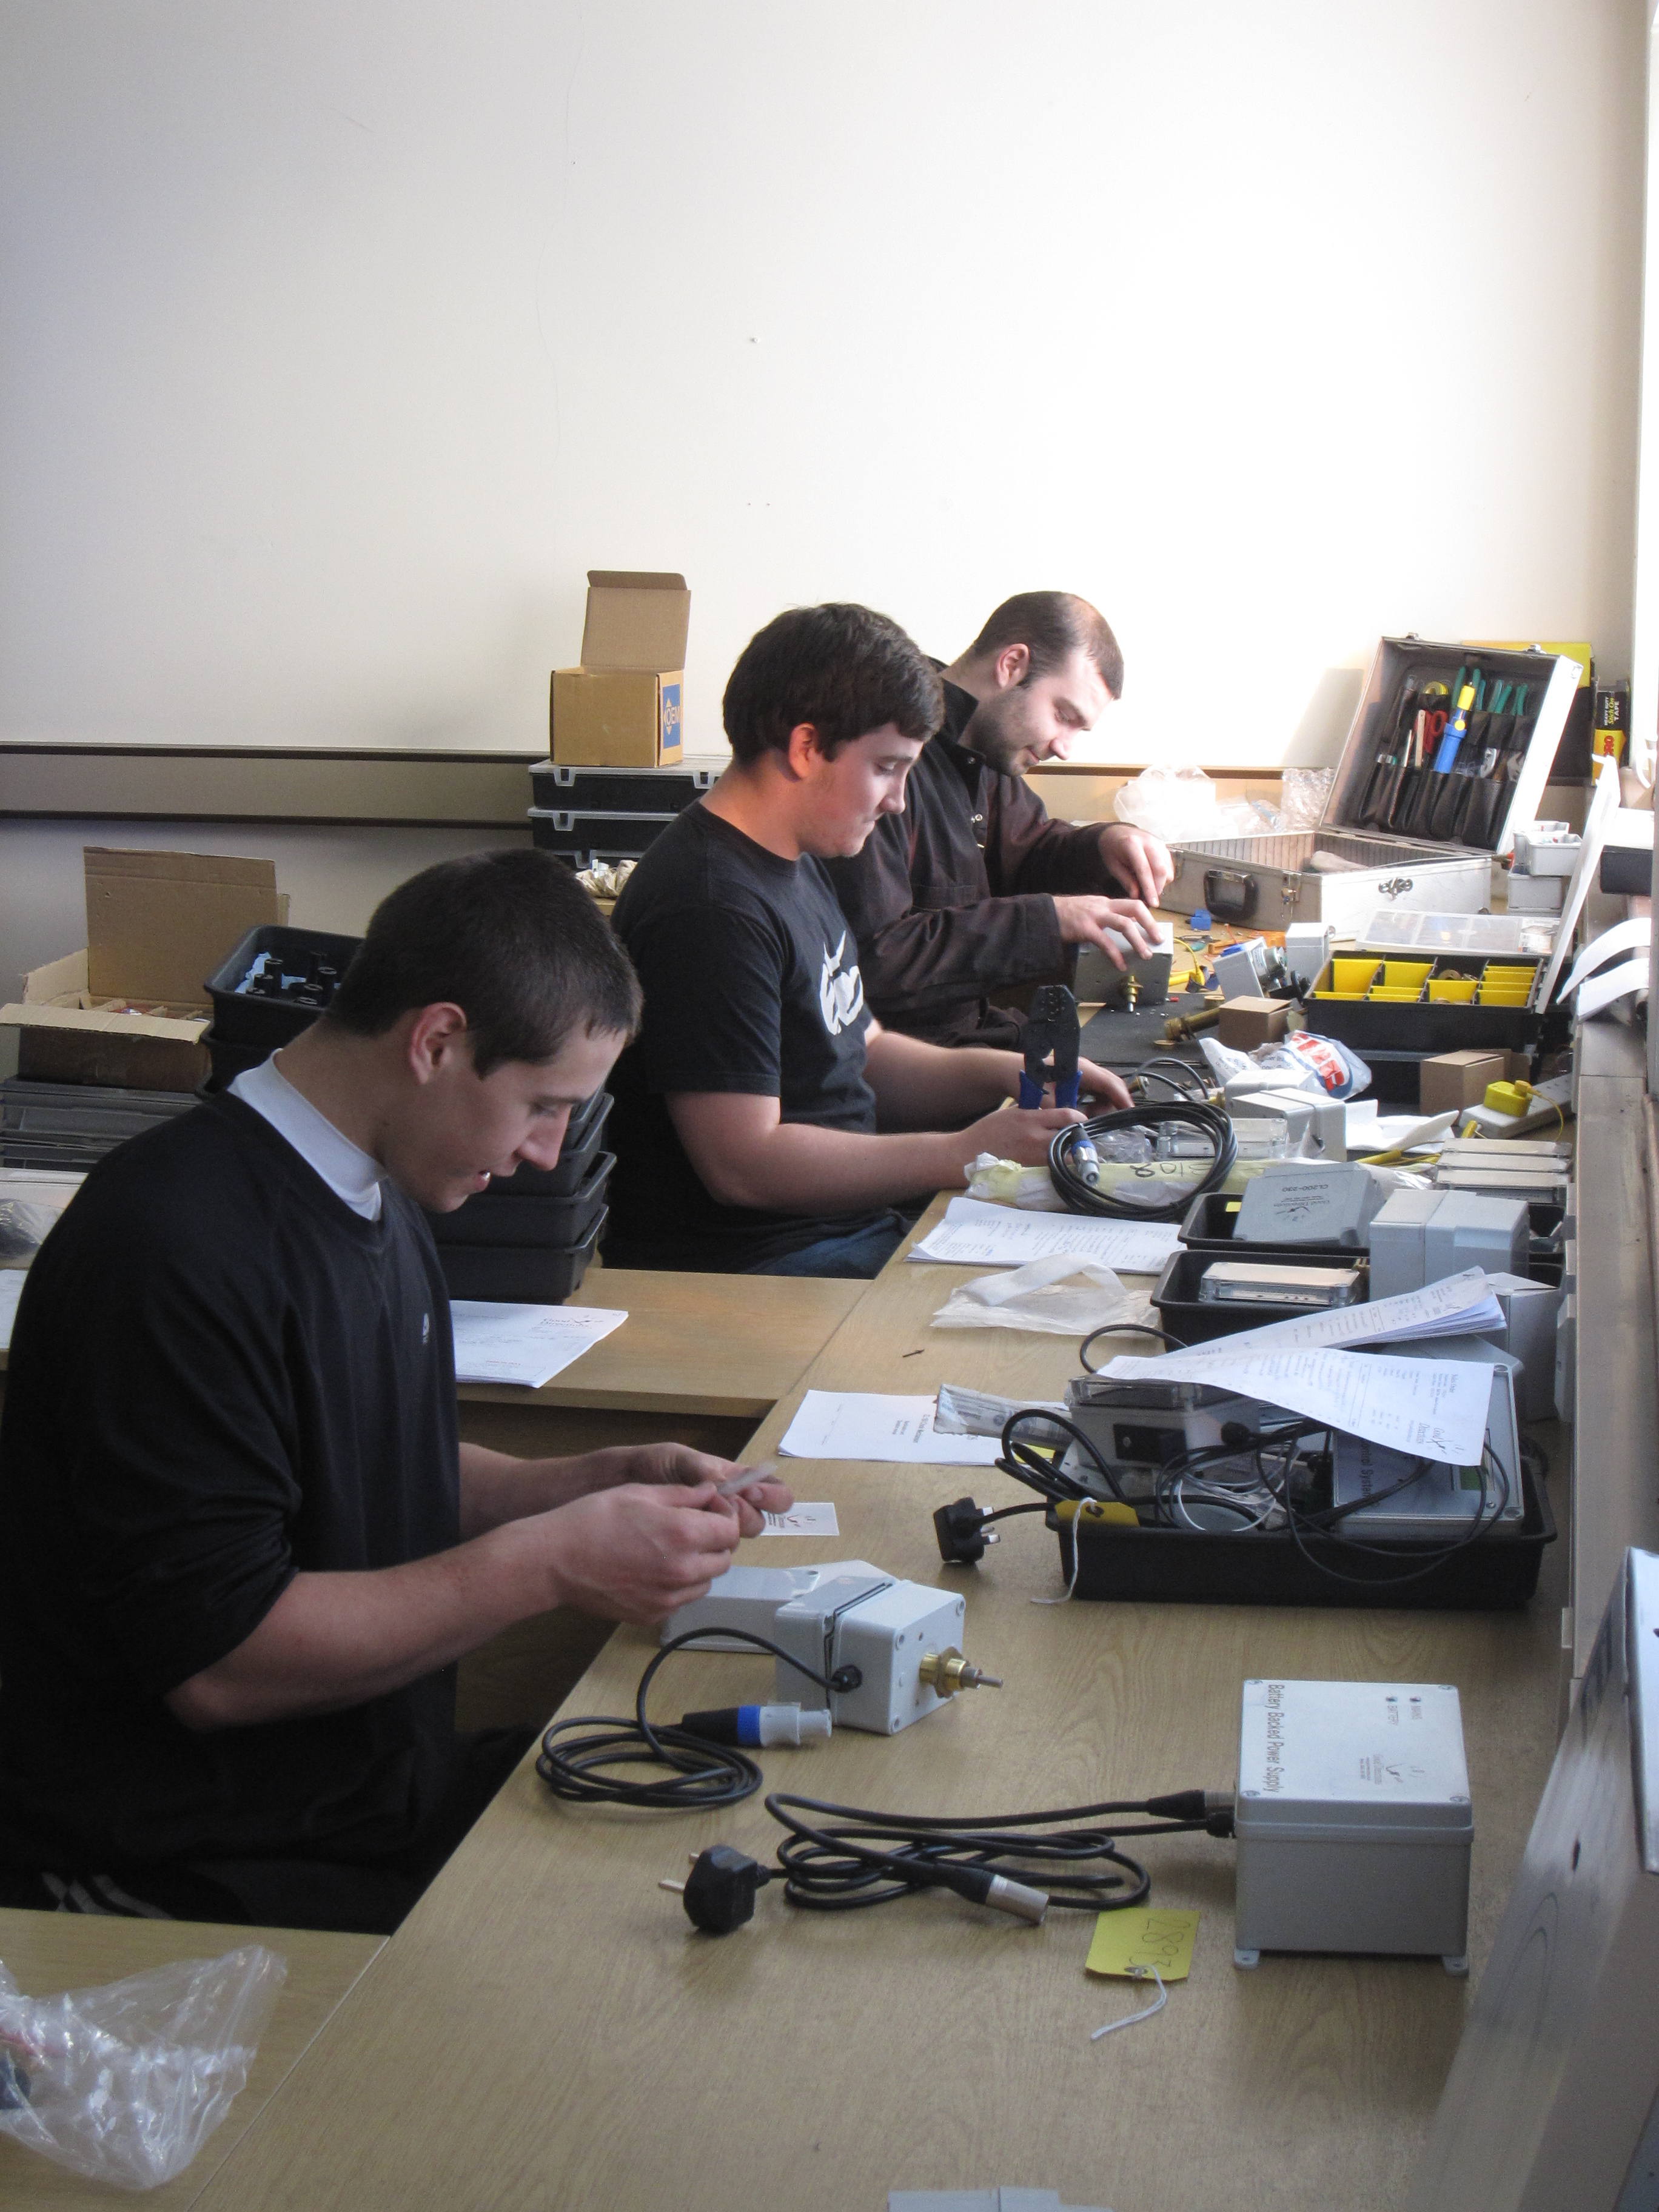 Assembly of clock components